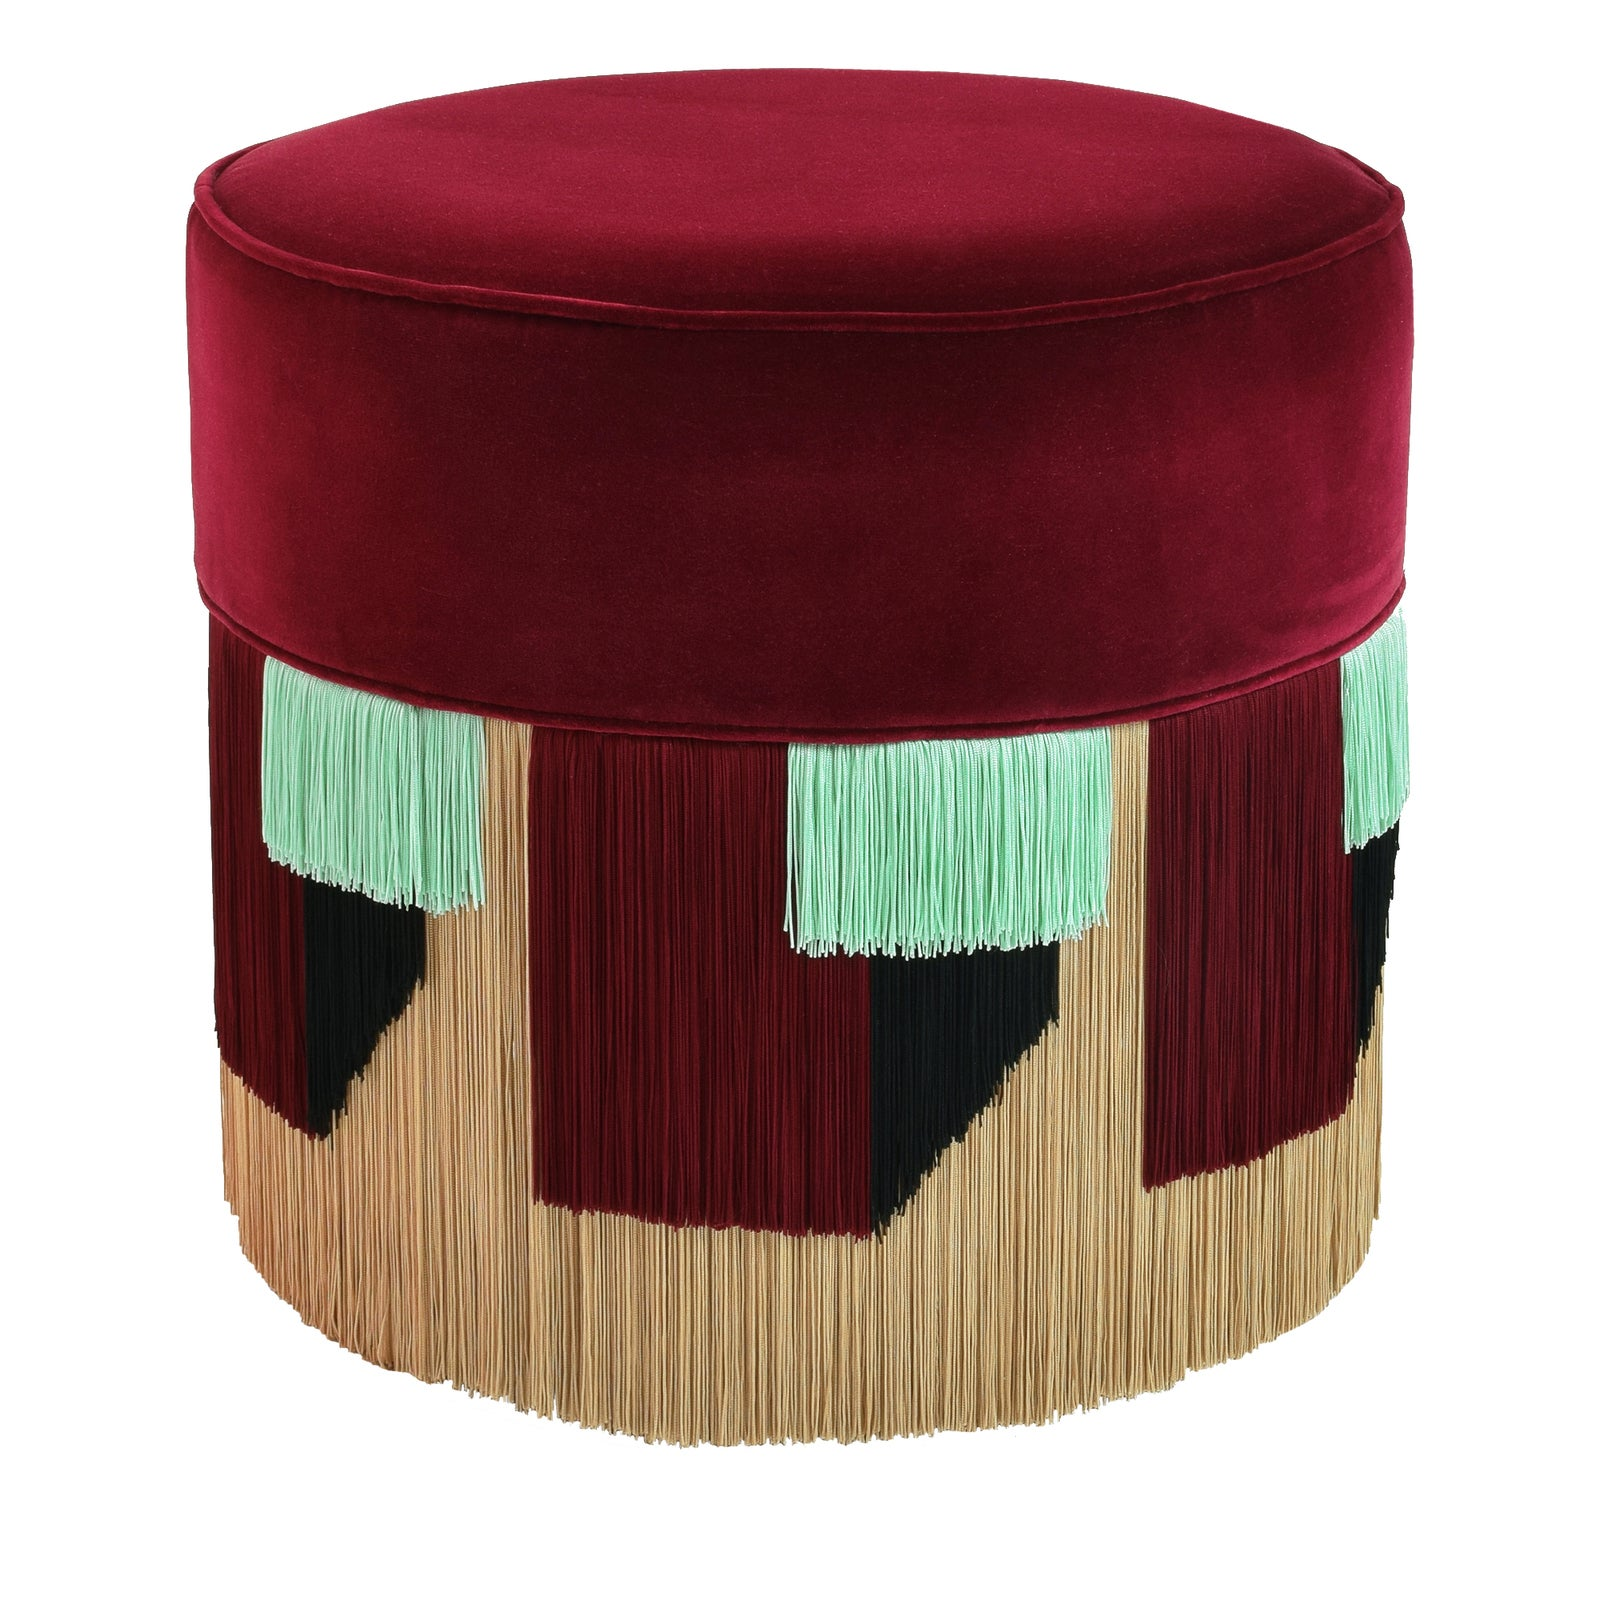 Couture Bordeaux Pouf with Geometric Fringe by Lorenza Bozzoli Design